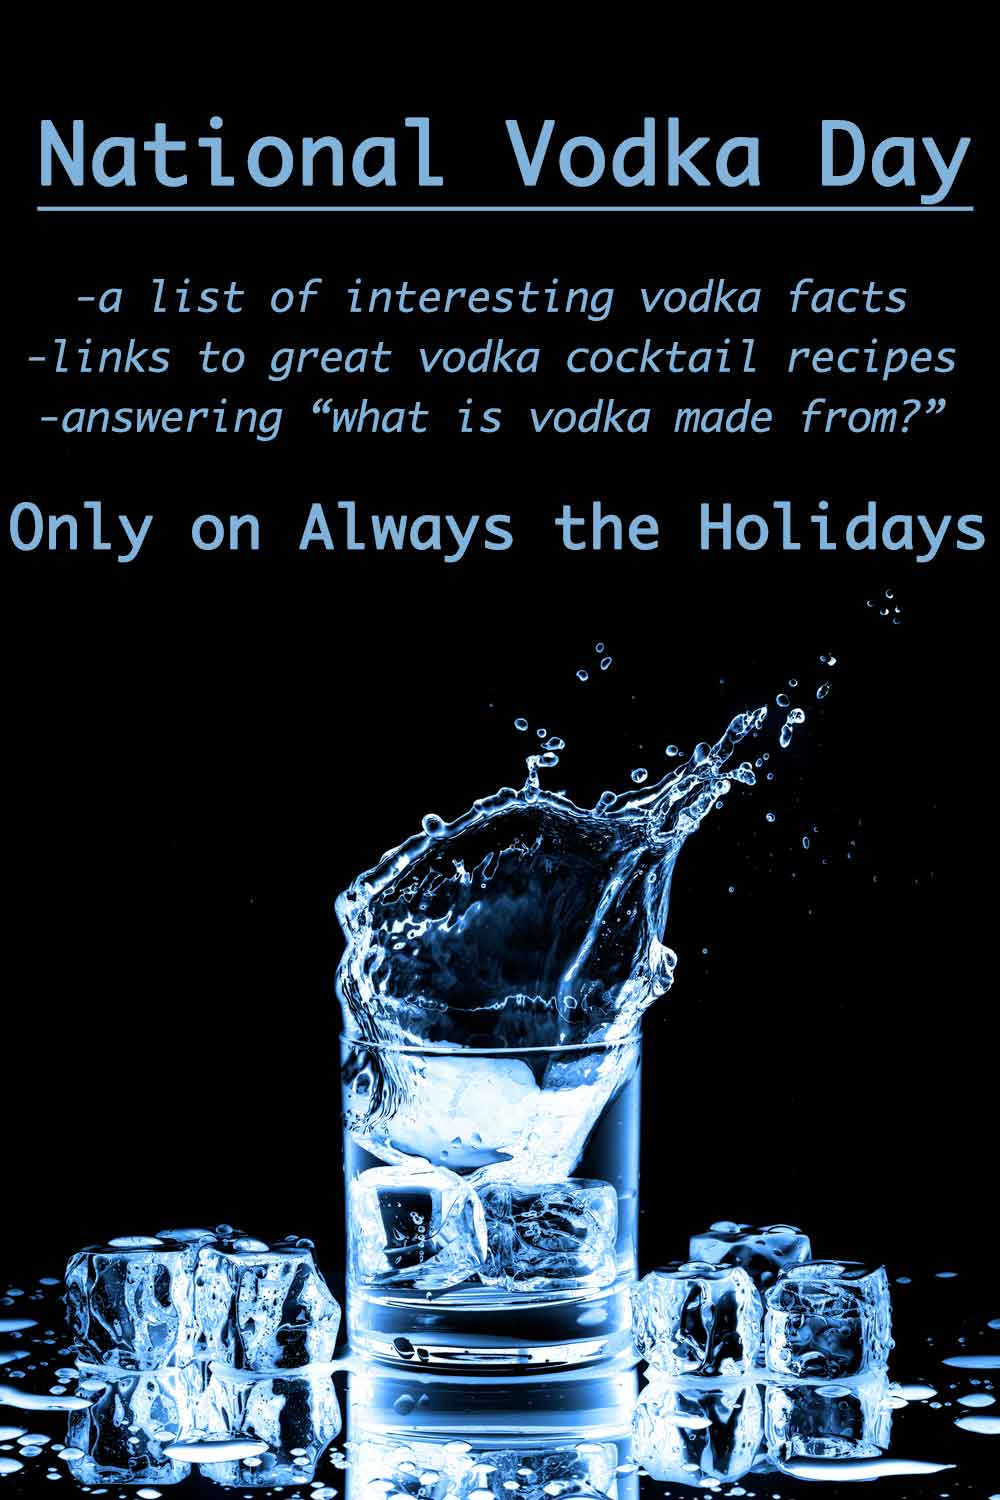 """Ice cubes splashing into a short glass of vodka with a blue hue against a black background with a text overlay reading """"National Vodka Day, a list of interesting vodka facts, links to great vodka cocktail recipes, and answering what is vodka made from?, only on Always the Holidays""""."""